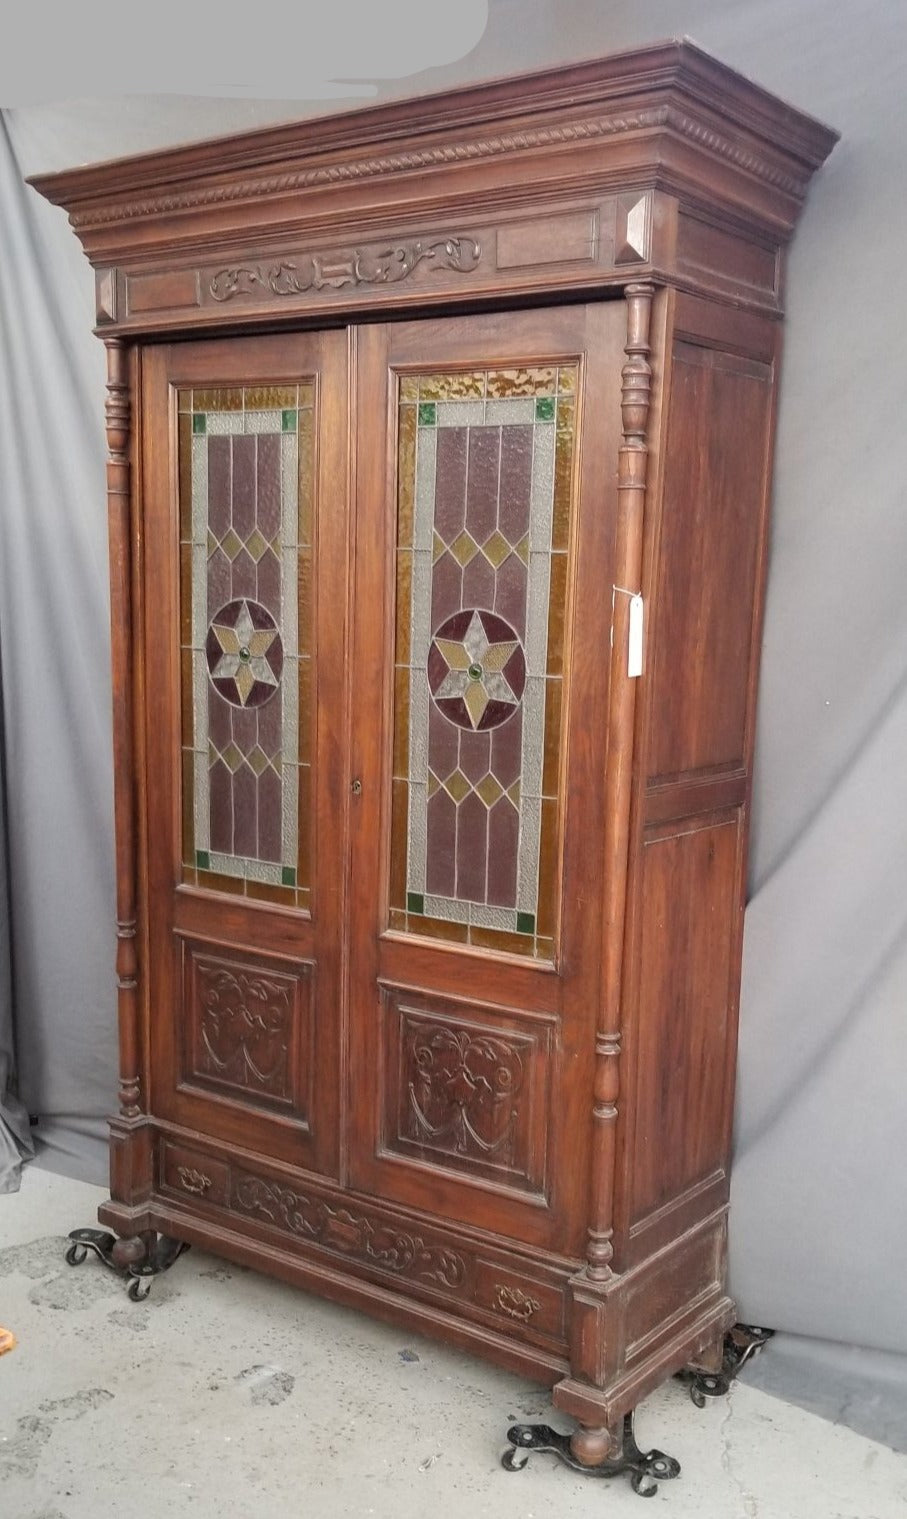 HENRI II BOOKCASE WITH  STAINED GLASS DOORS